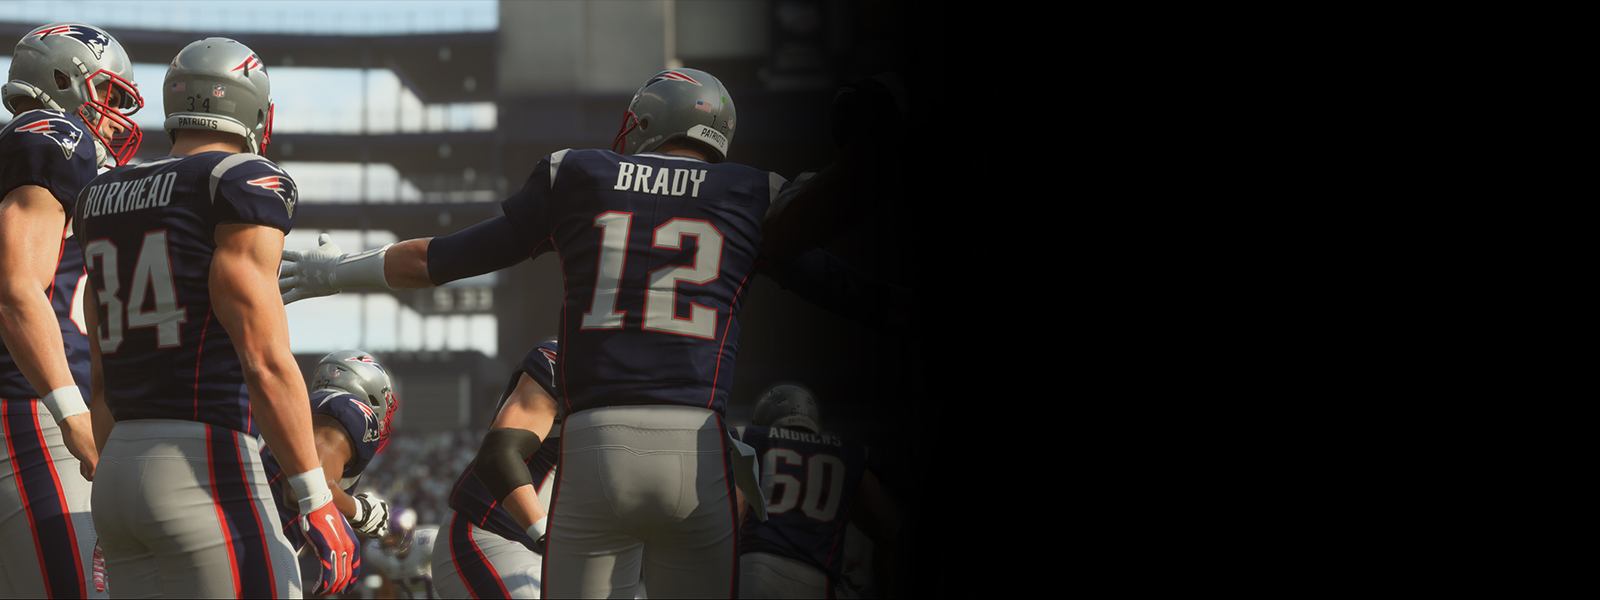 A shot from Madden NFL 19 showing players in the heat of a game